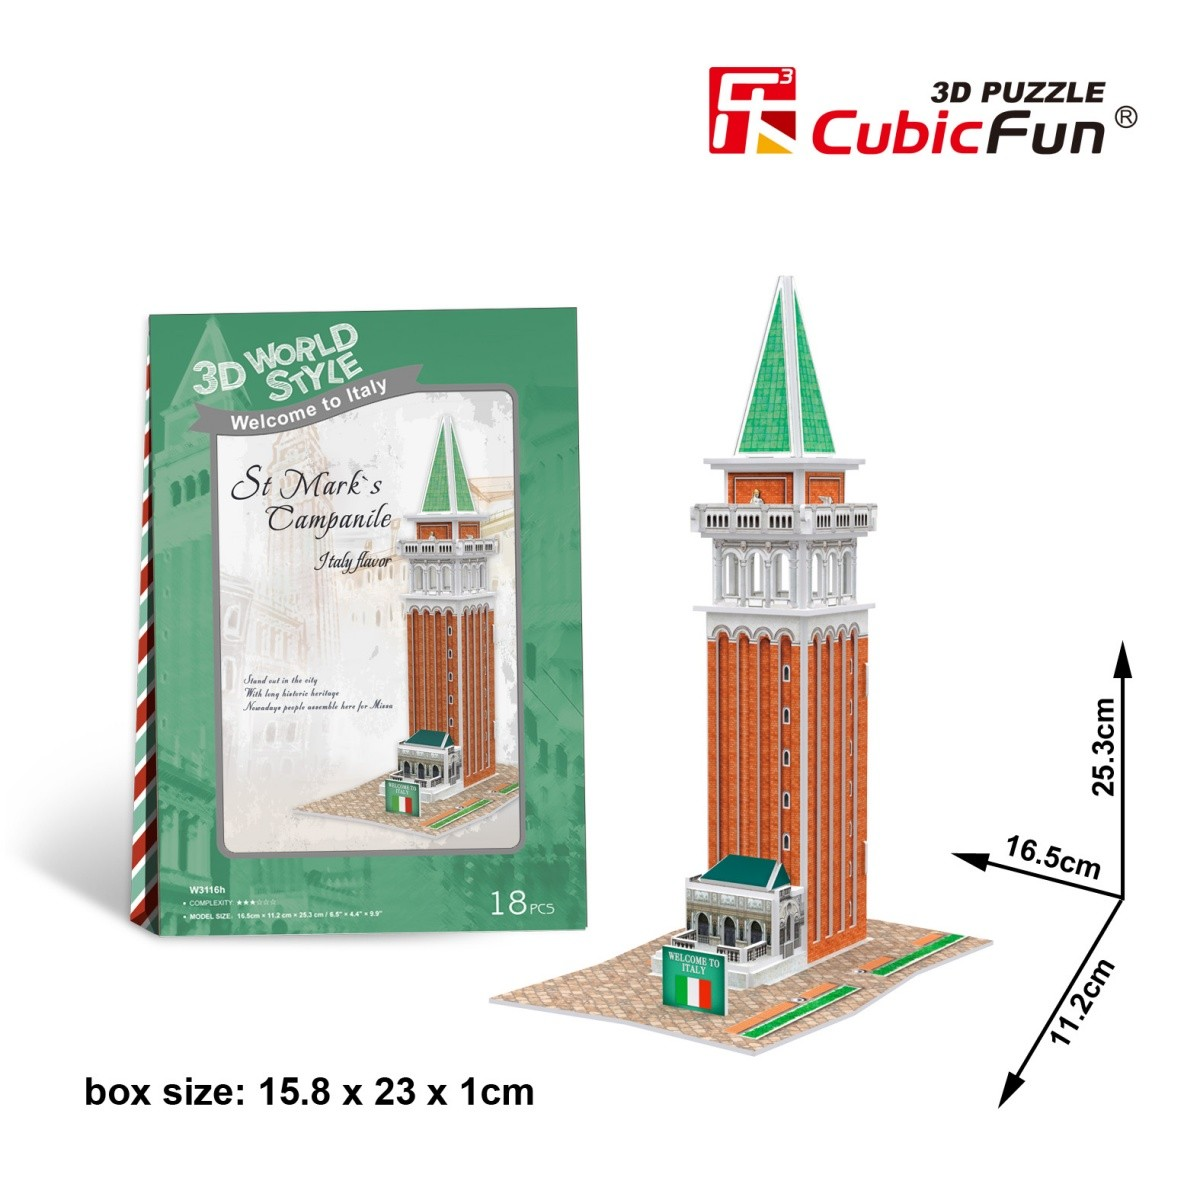 cubic-fun-3d-puzzle-world-style-welcome-to-italy-18-teile-puzzle-cubic-fun-w3116h